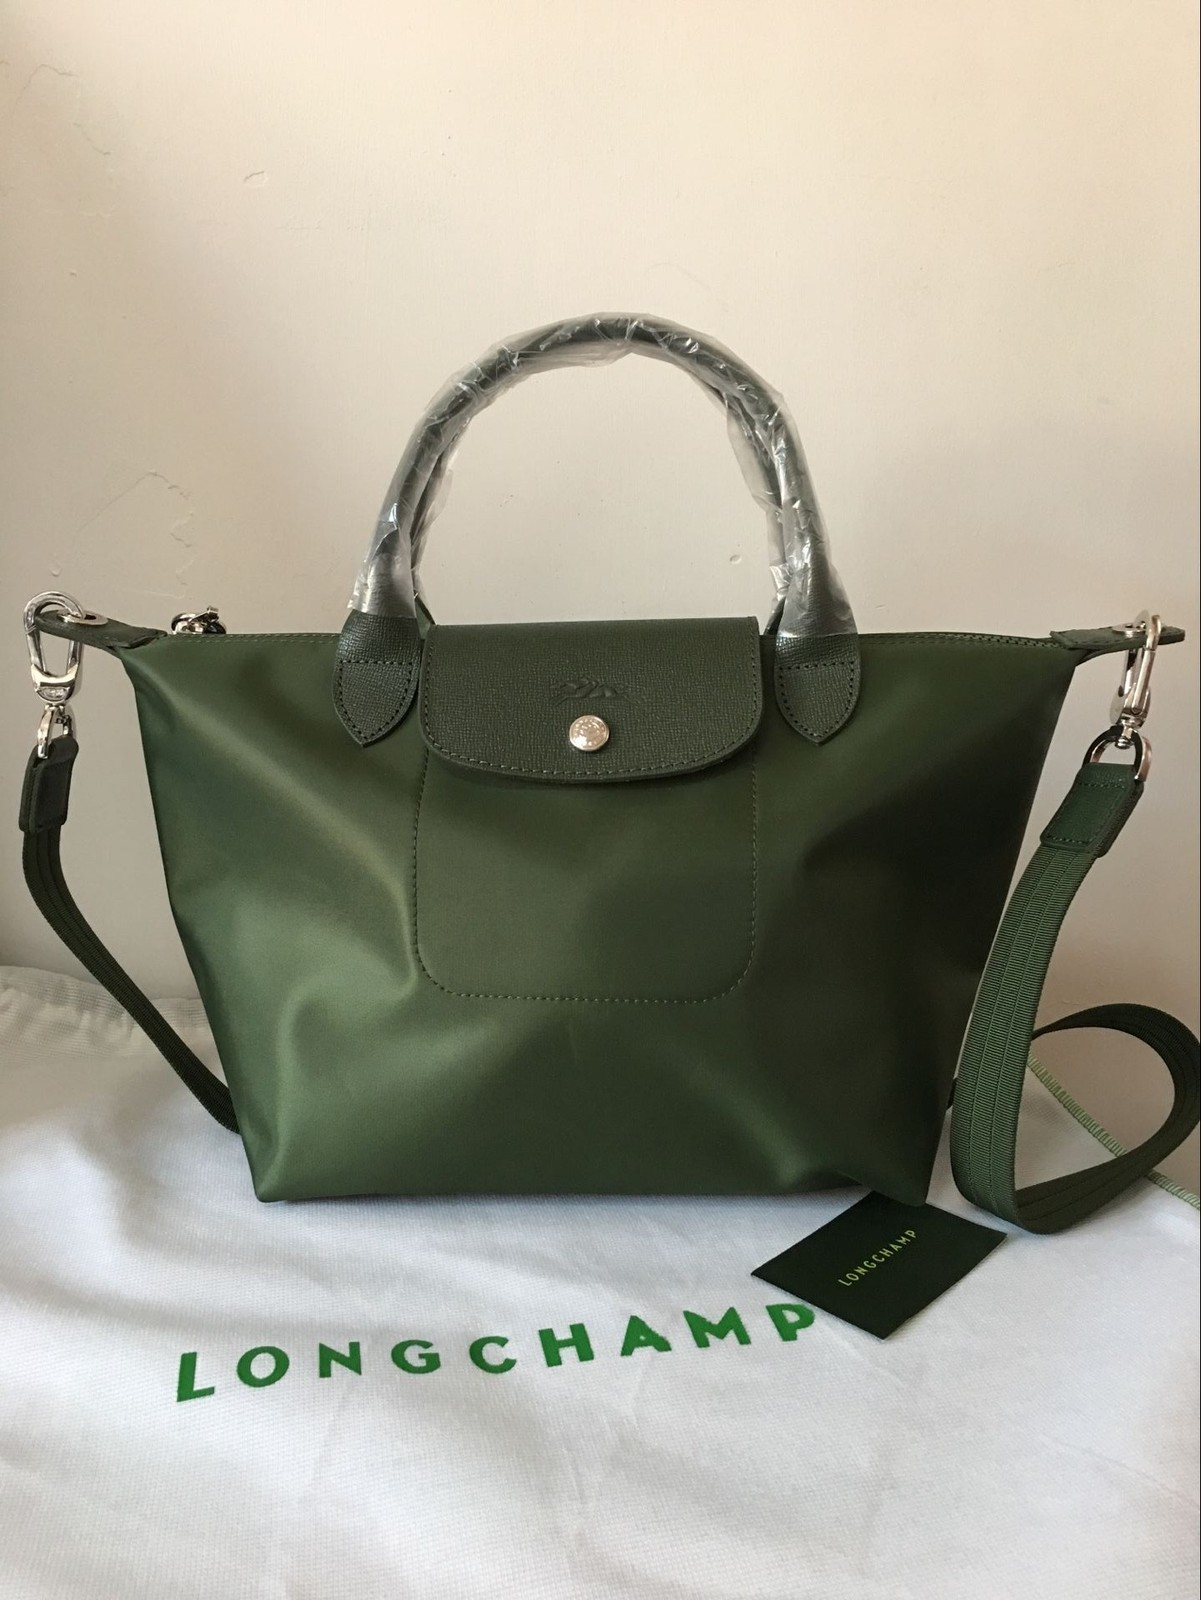 6b8aaf55c526 Qq 20170227185130. Qq 20170227185130. Previous. France Made Longchamp Le  Pliage Neo Small Handbag Moss Green 1512578749